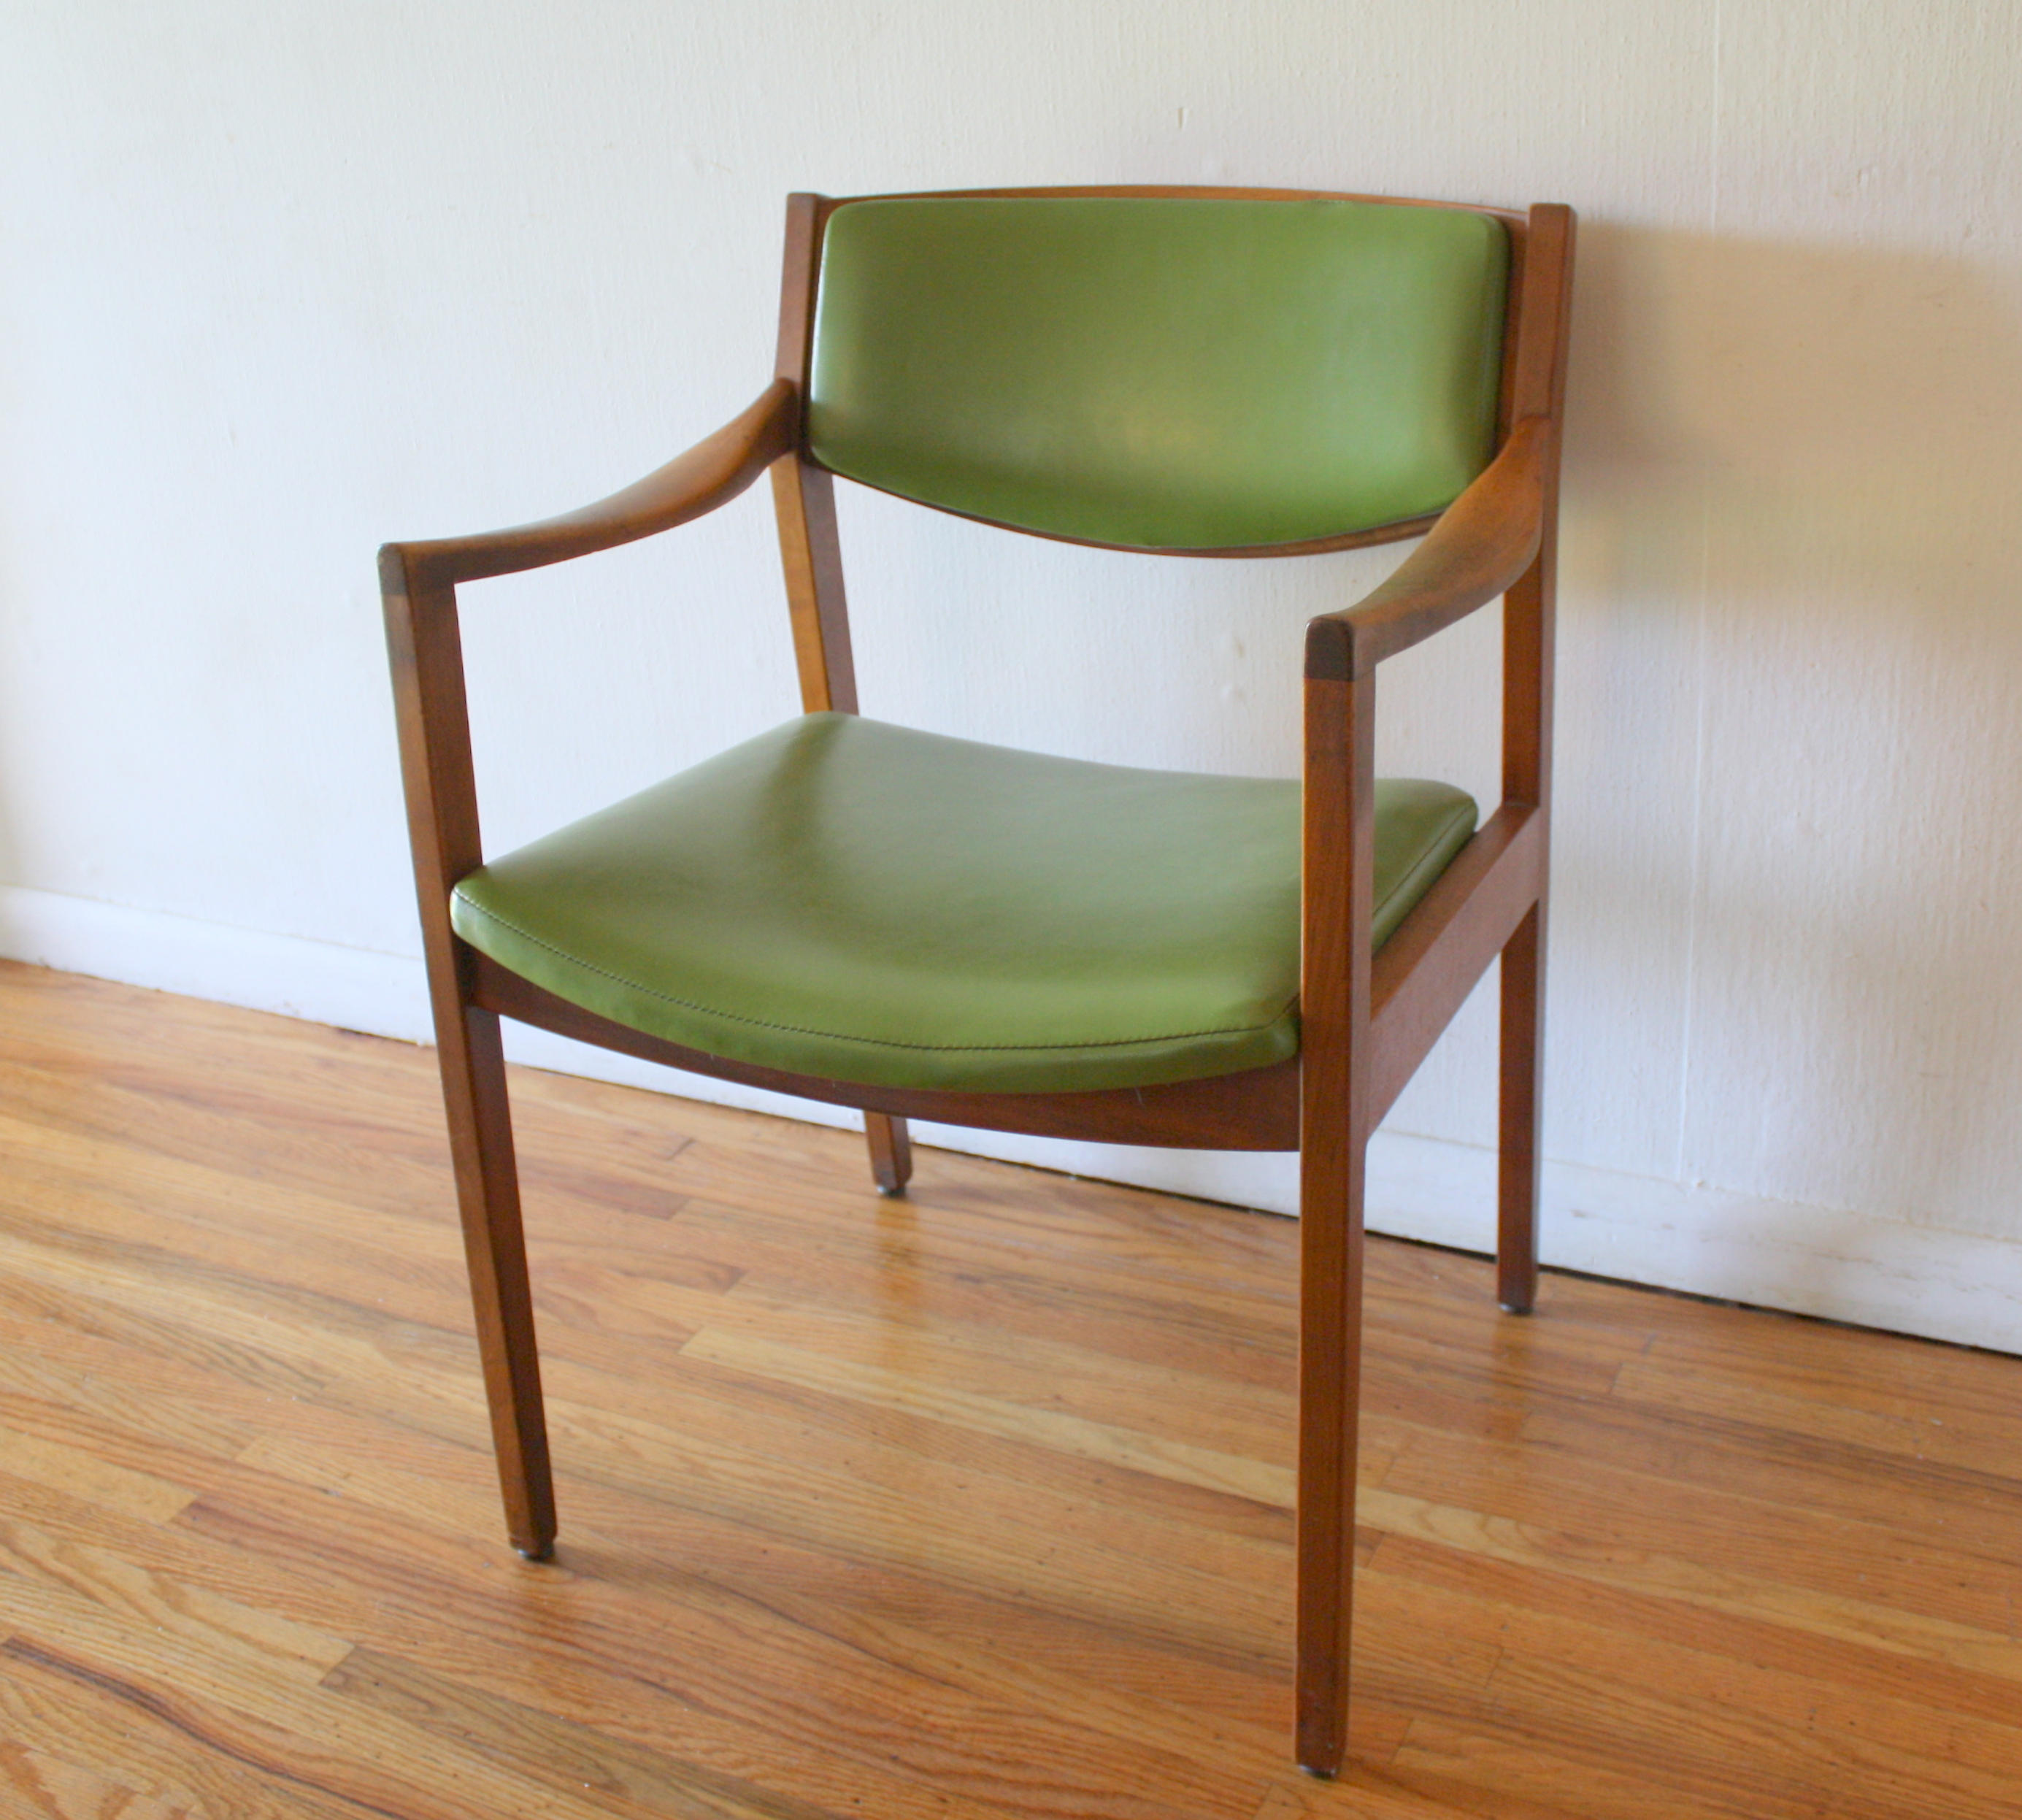 mcm avocado green arm chair 1